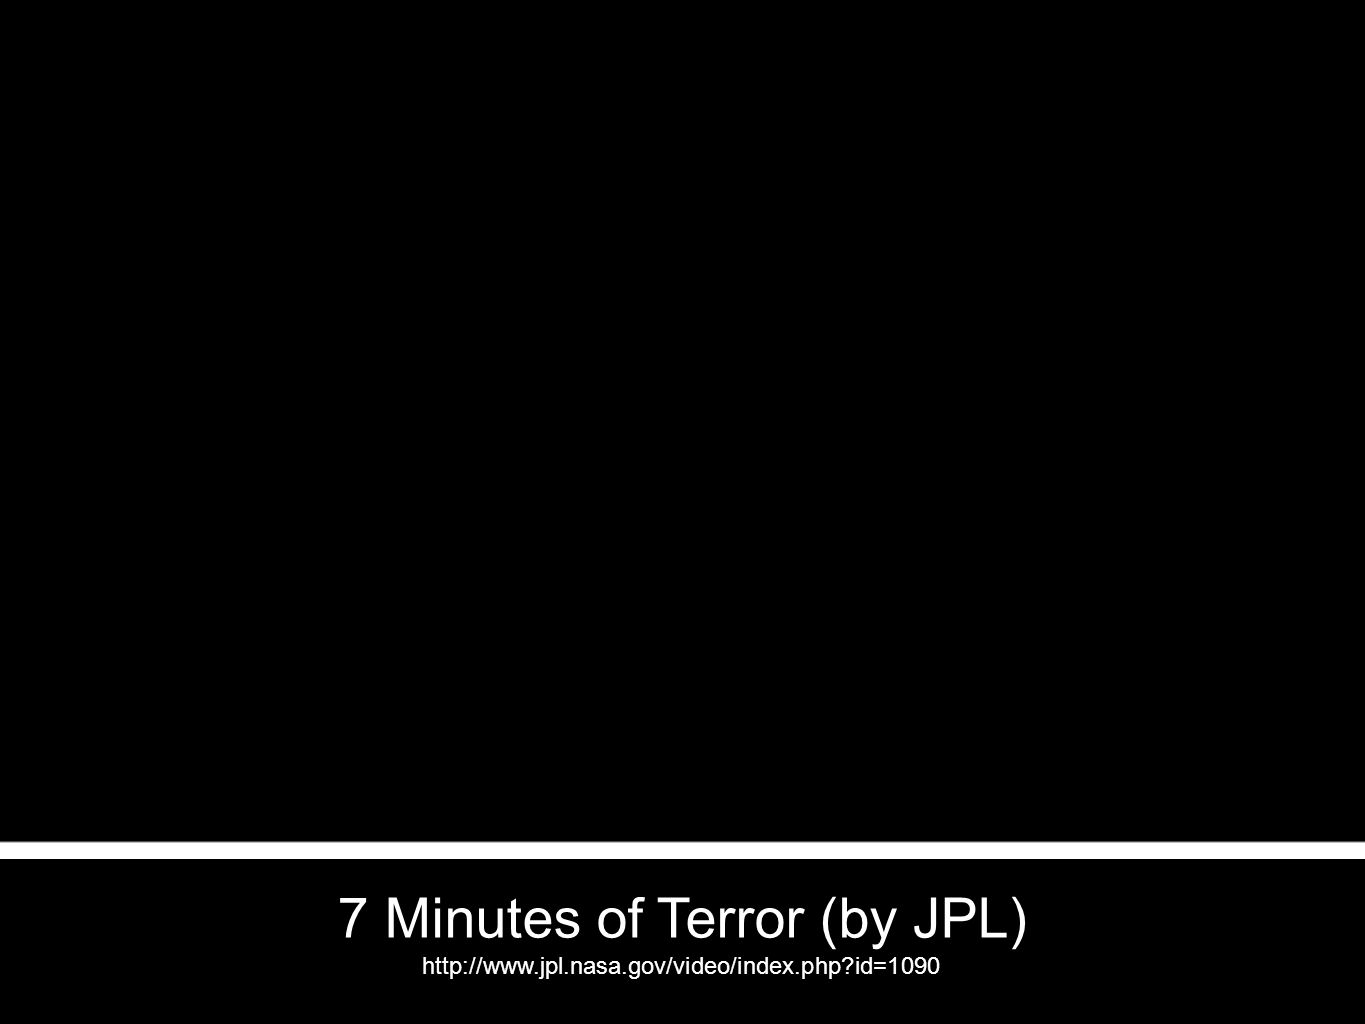 7 Minutes of Terror (by JPL) http://www.jpl.nasa.gov/video/index.php id=1090